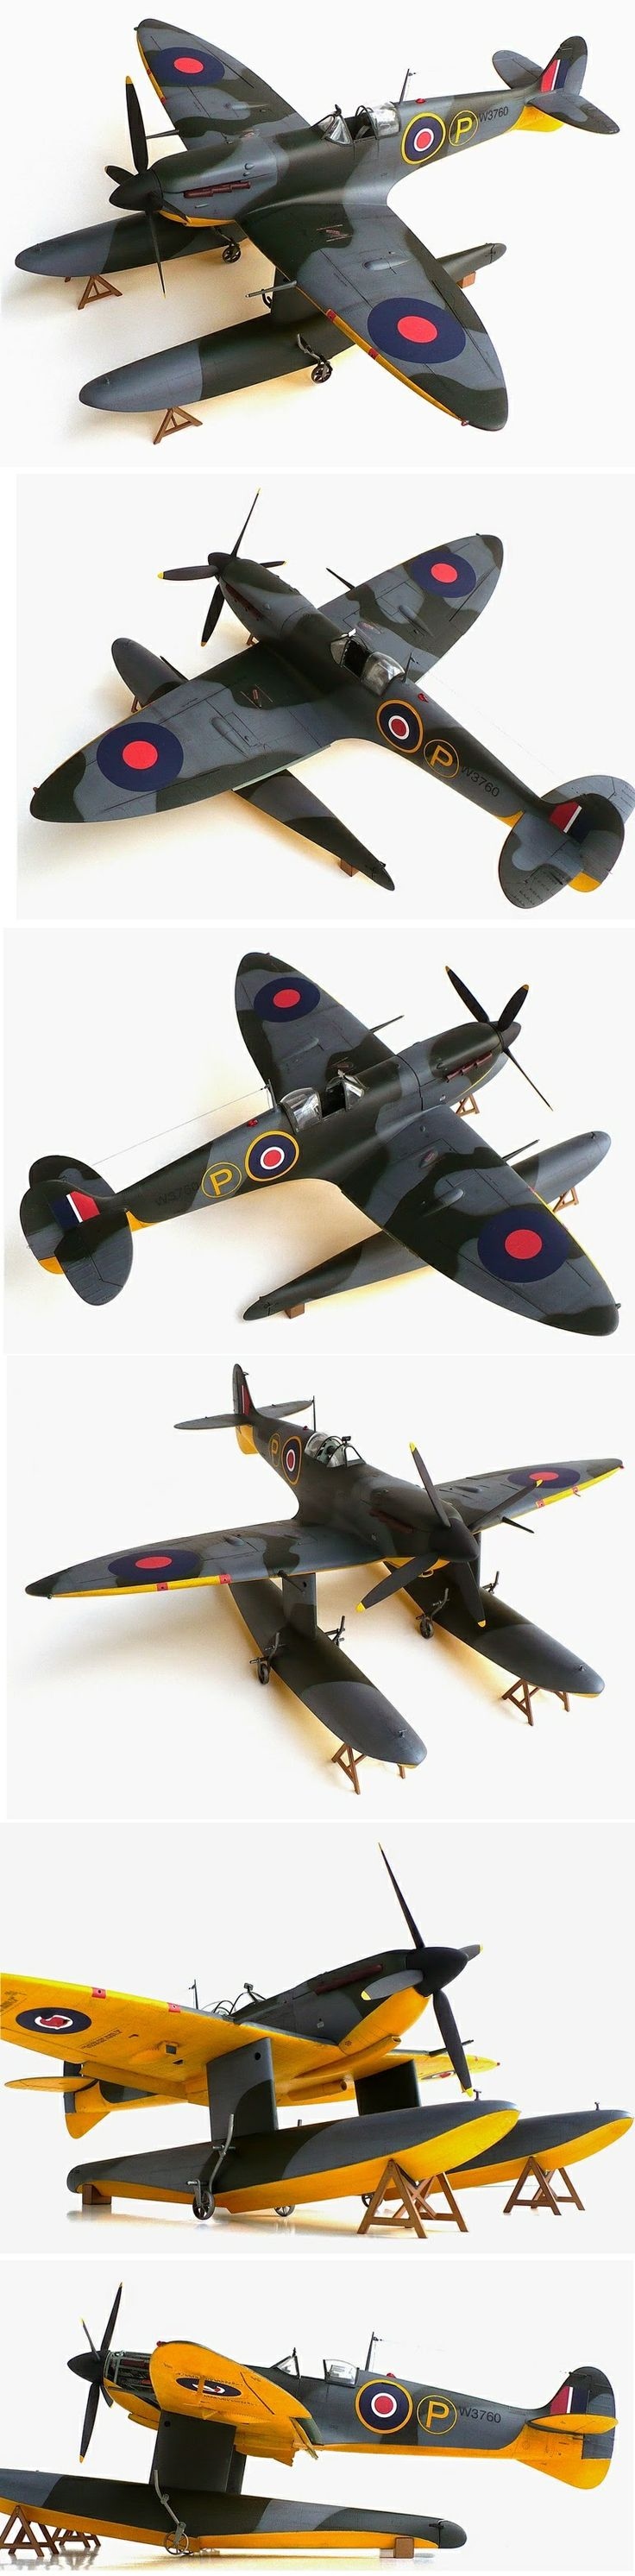 Supermarine Spitfire with floats